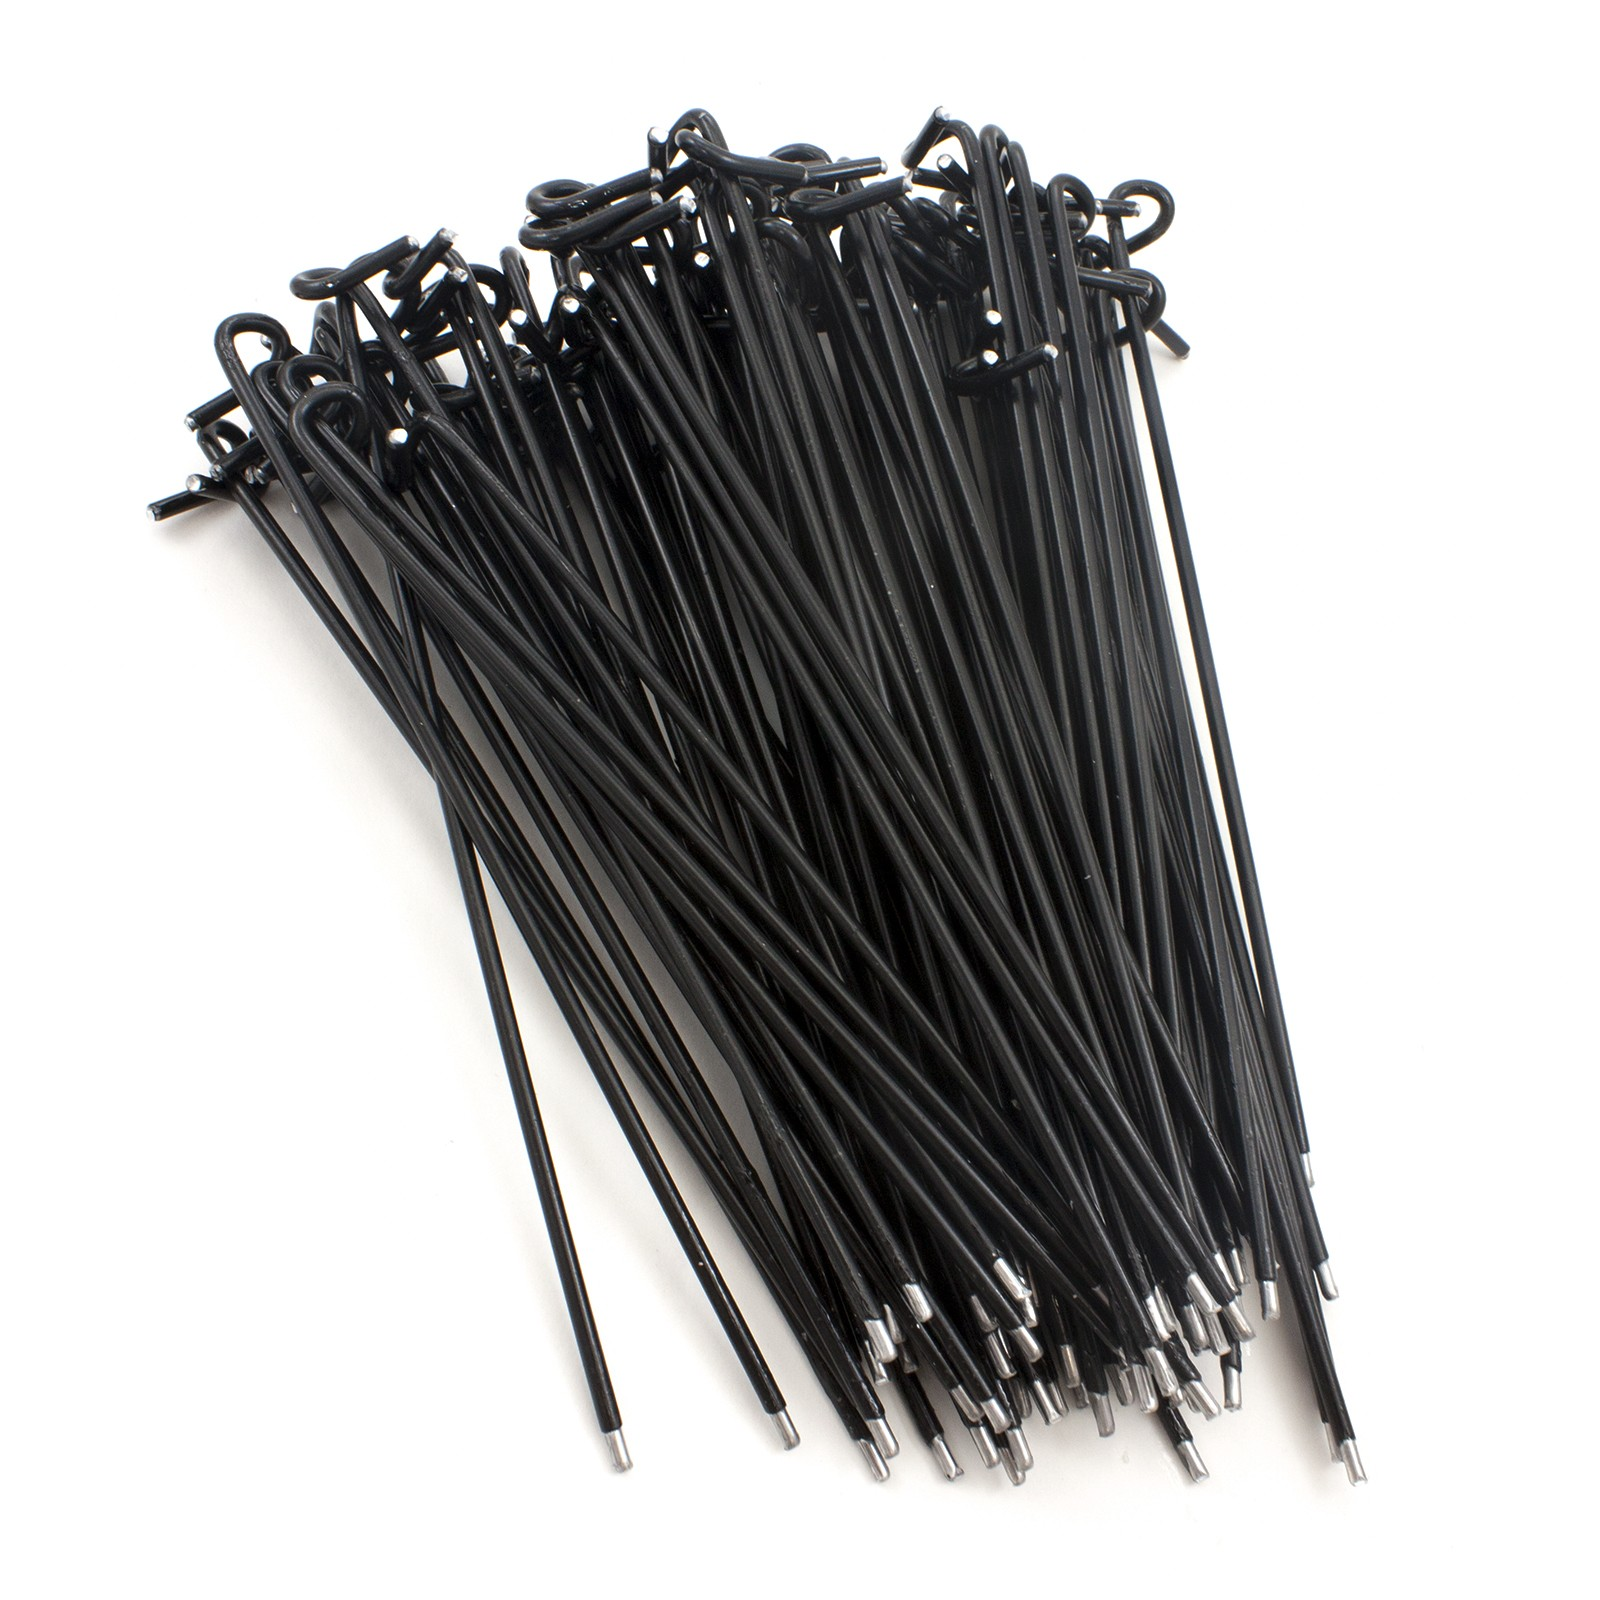 8 1 4 Quot Black Fence Ties Bag Of 100 Fits 2 1 2 Quot Post